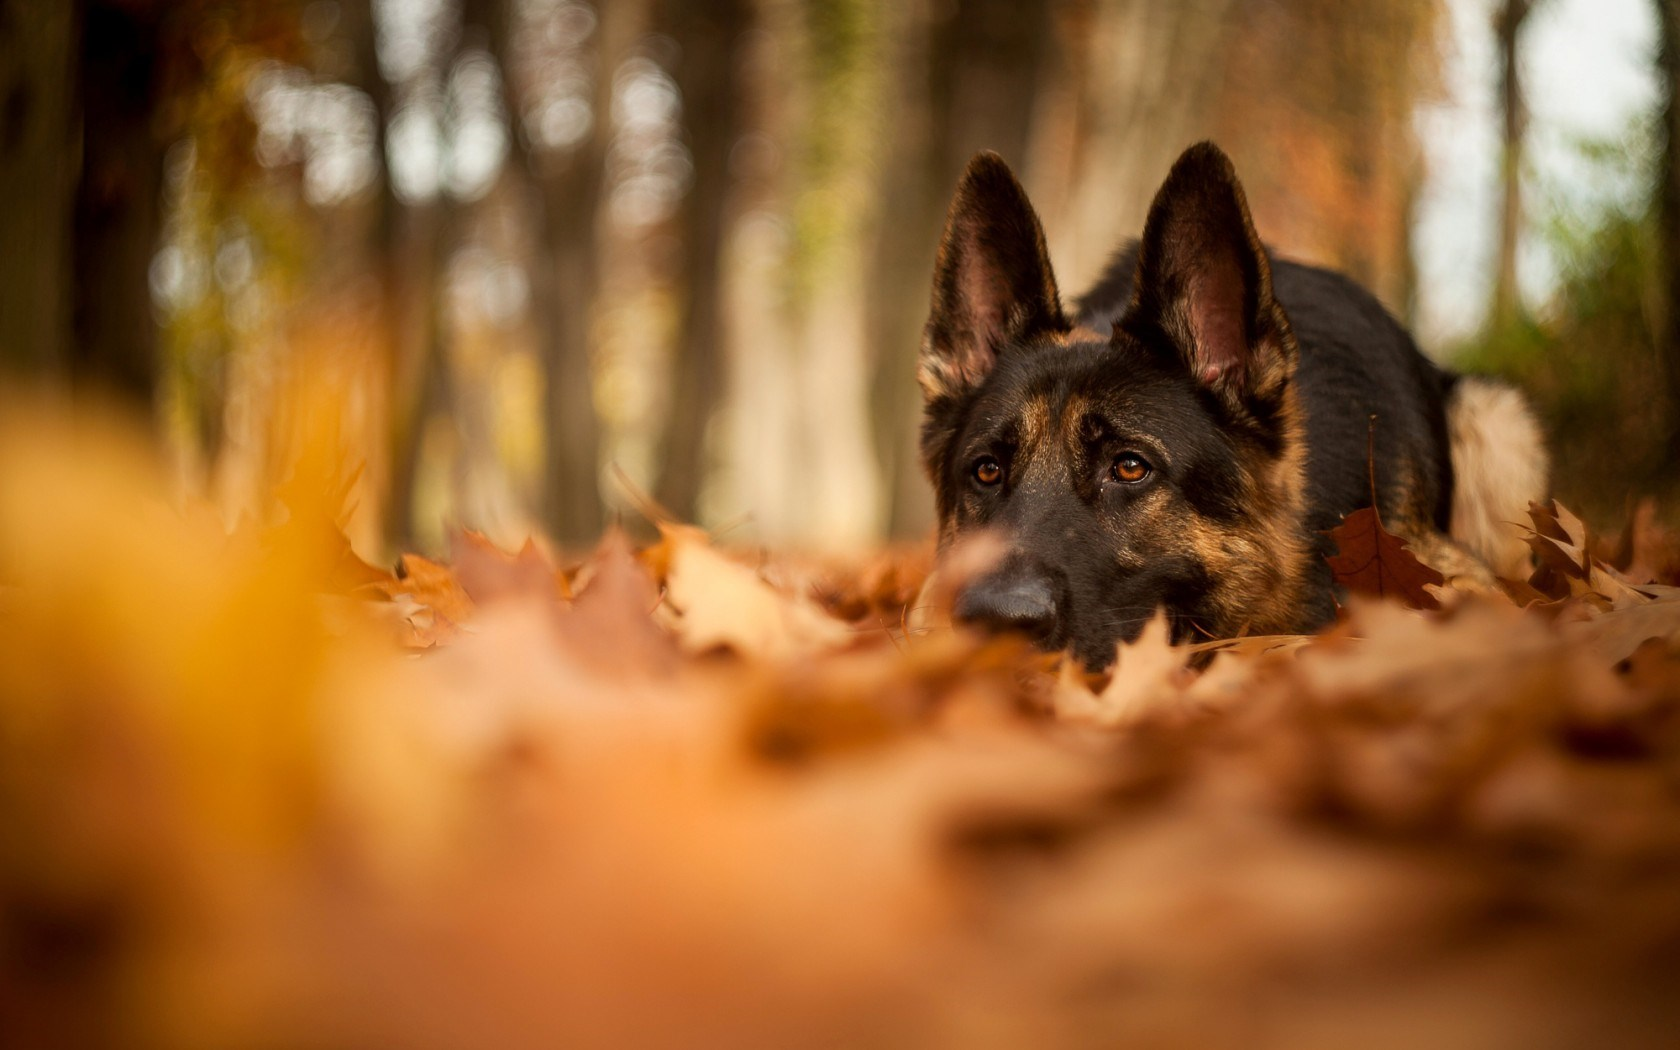 Fall with Animal Background Wallpapers 4115 - Amazing Wallpaperz